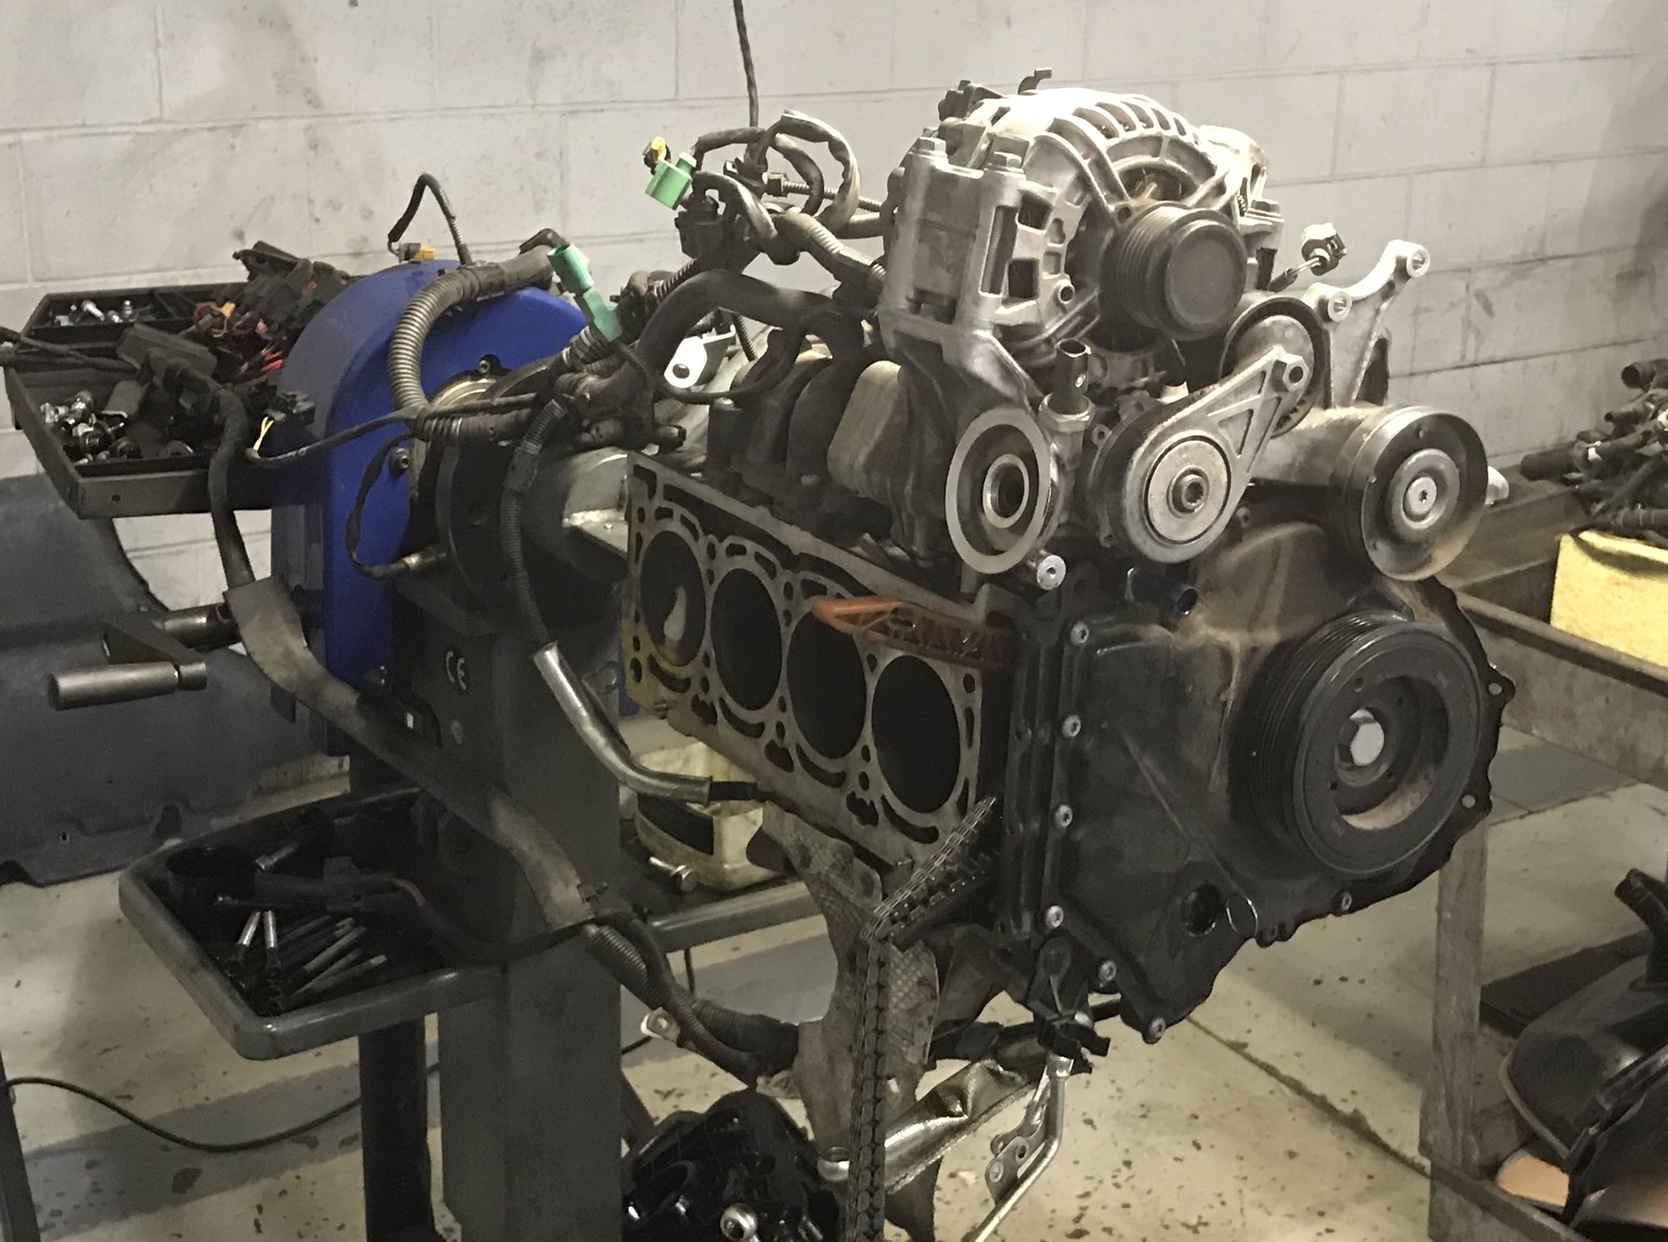 THE Timing Chain Tensioner Failure Thread - Page 15